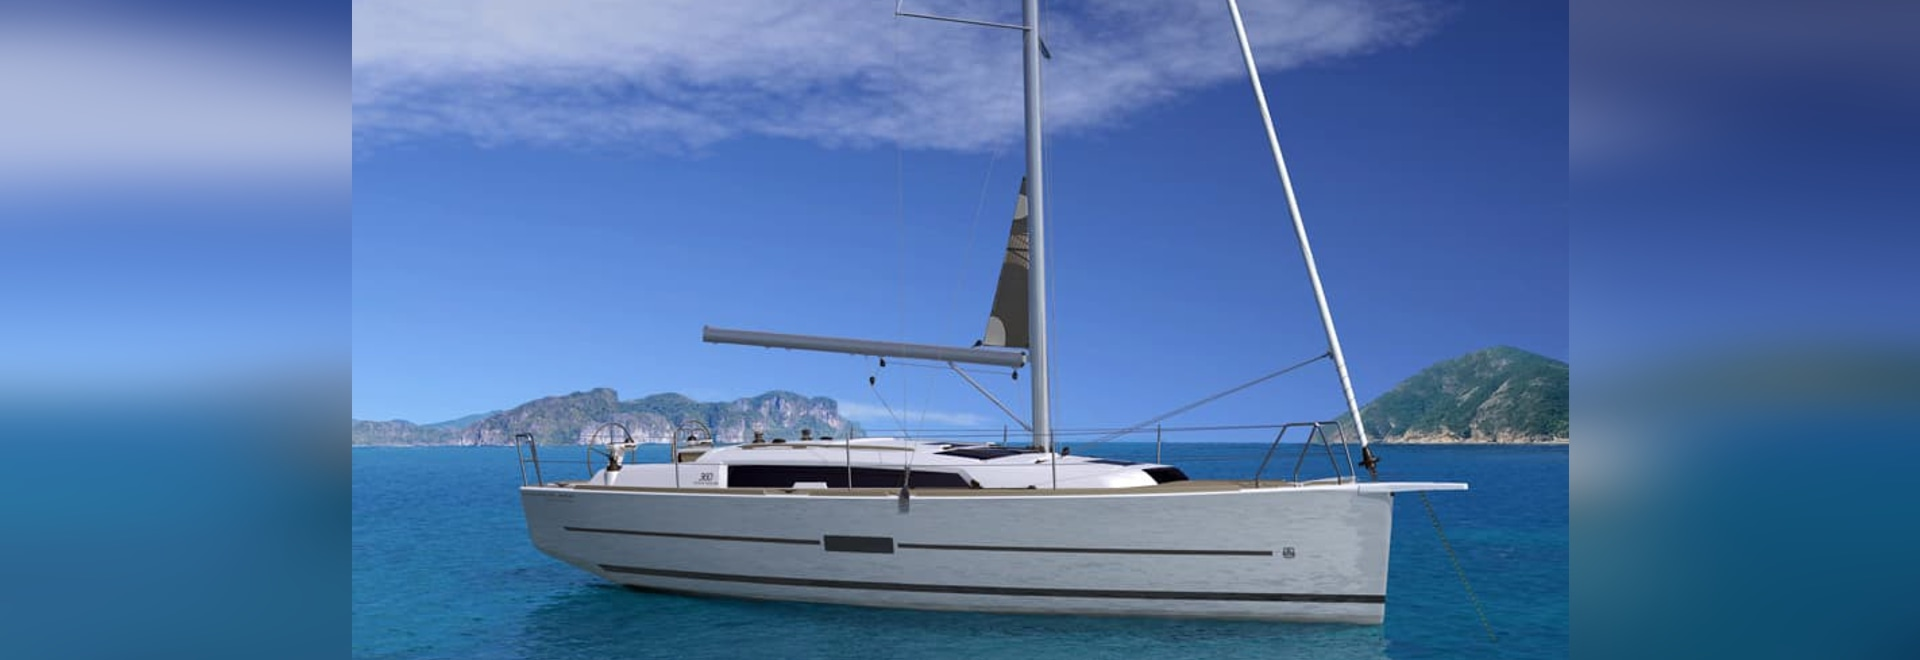 The Dufour 360 Grand Large will be on show at TheYachtMarket.com Southampton Boat Show